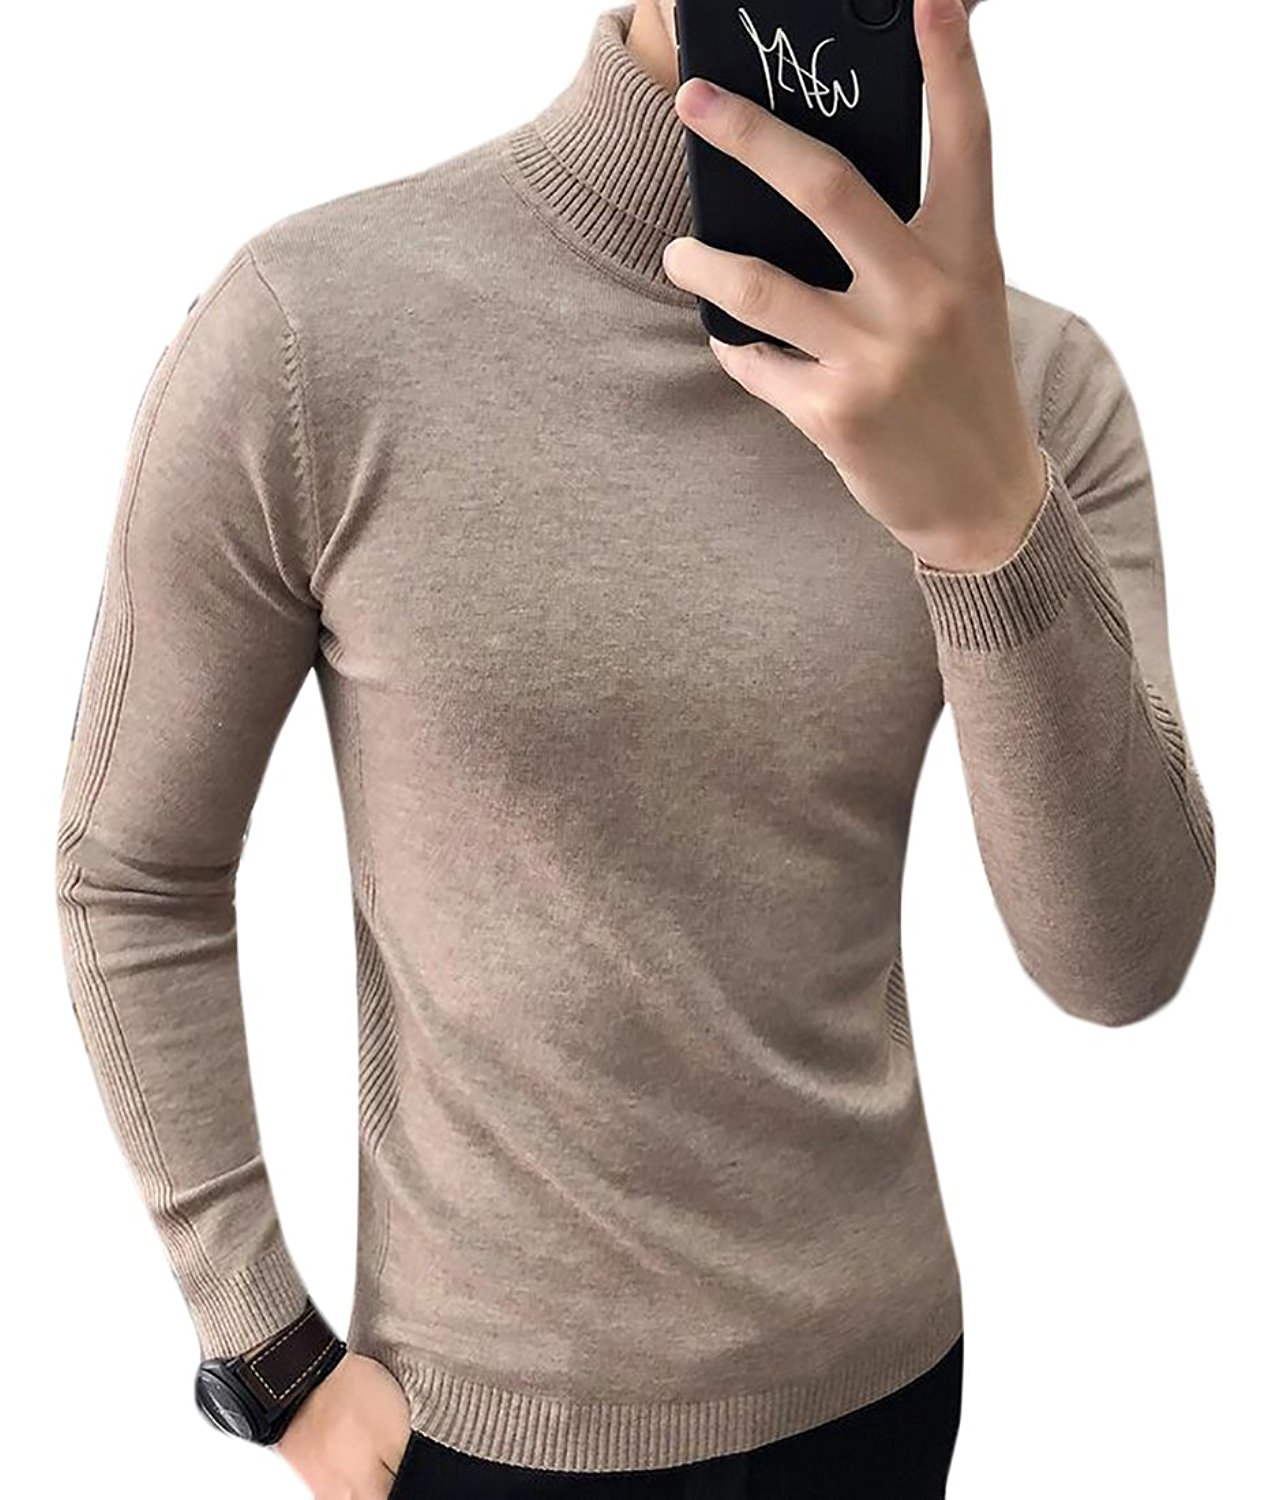 XQS Mens Autumn Casual Turtleneck Slim Fit Pullover Sweaters